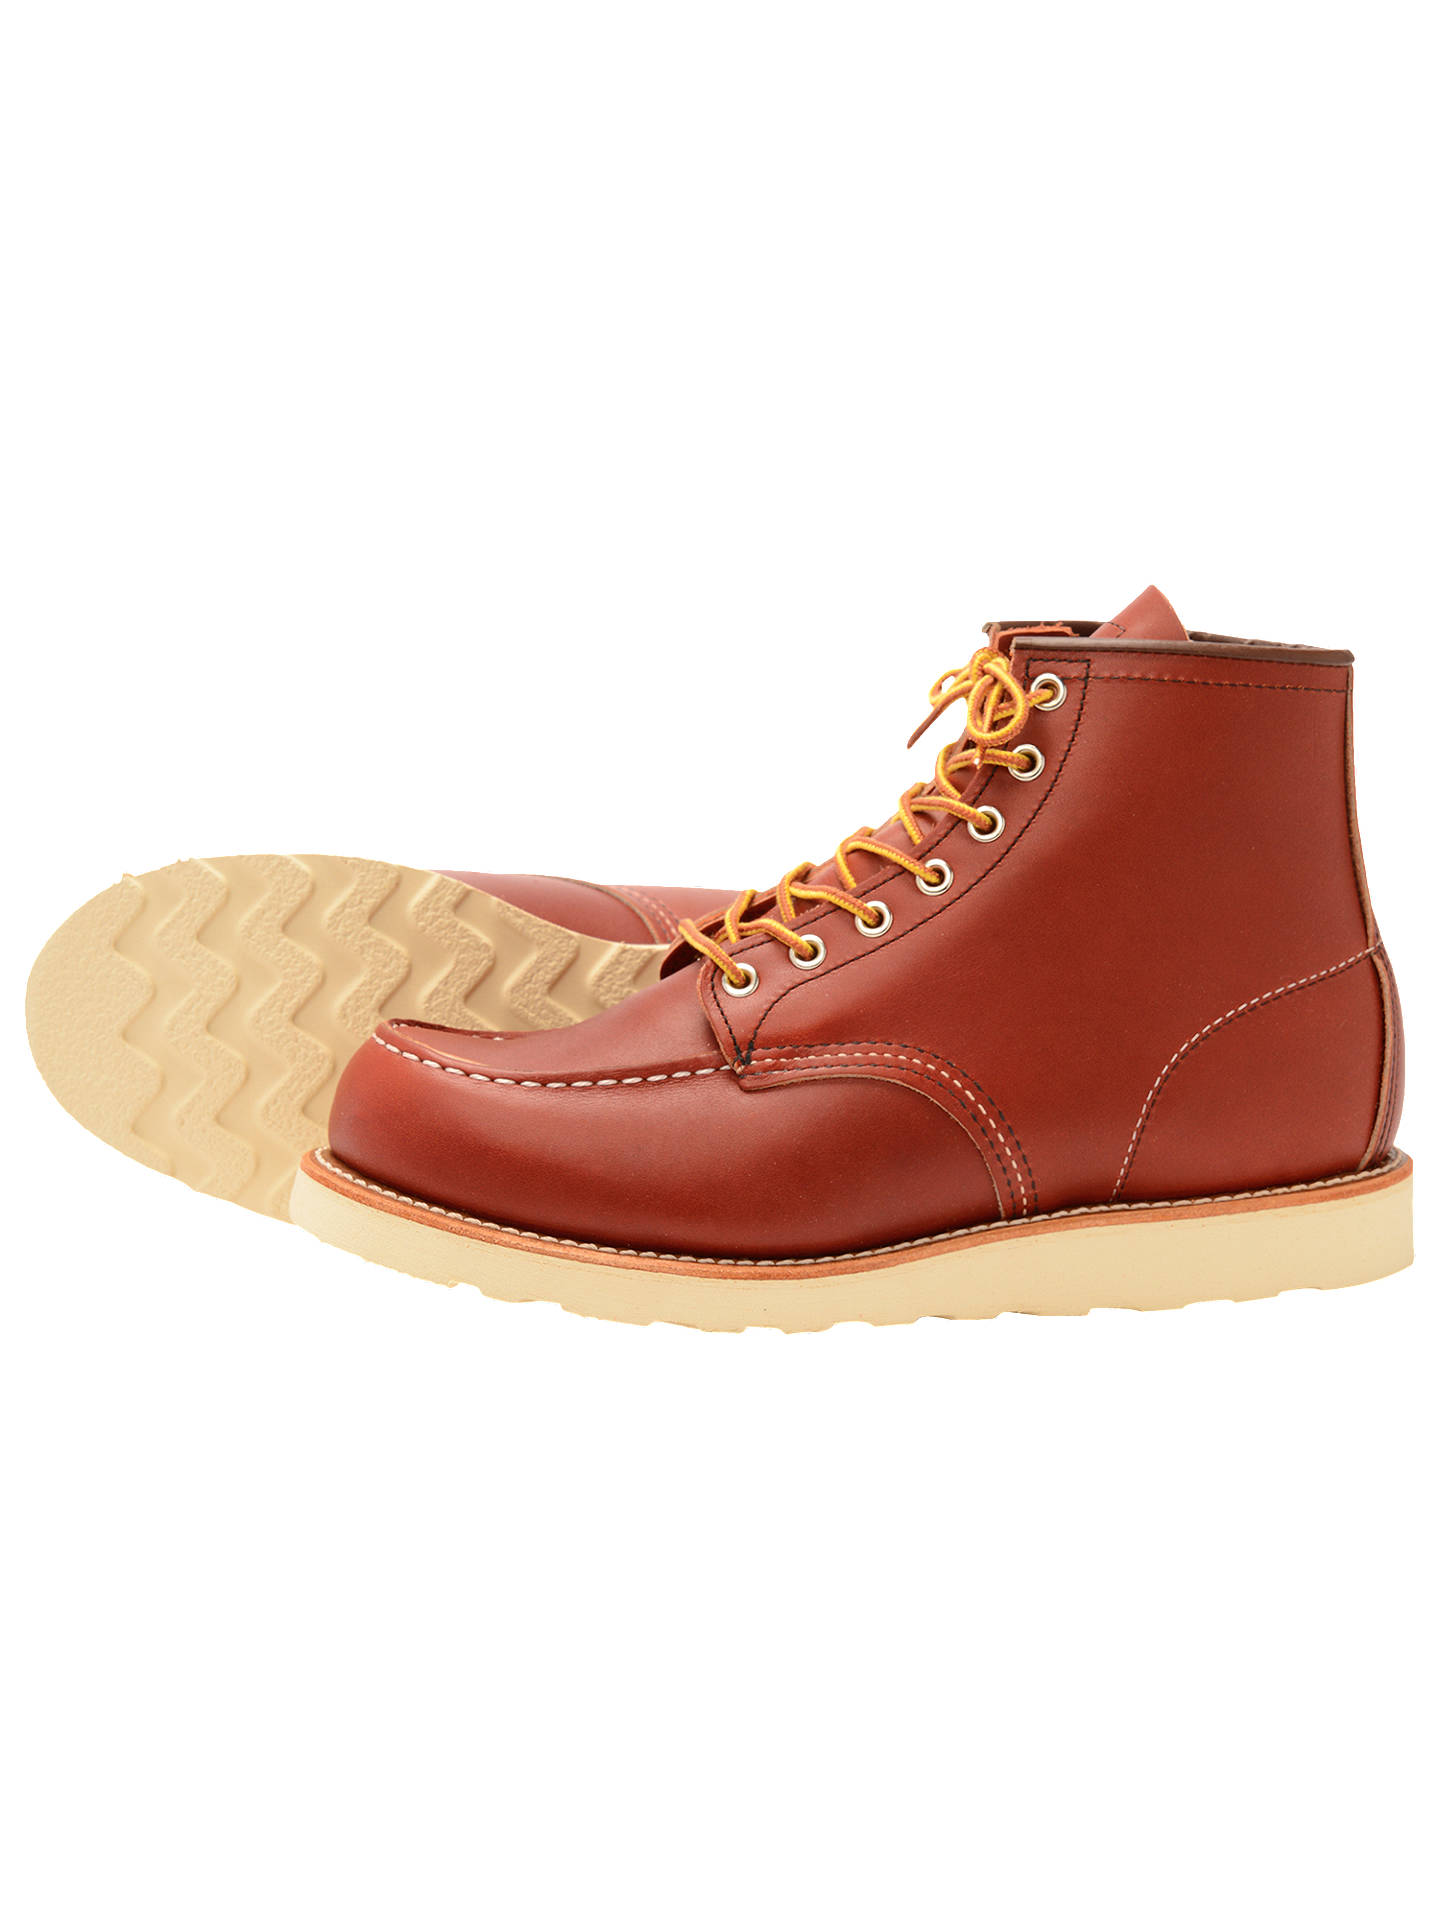 BuyRed Wing 8131 Moc Oro-russet Portage Toe Boot, Red, 7 Online at johnlewis.com